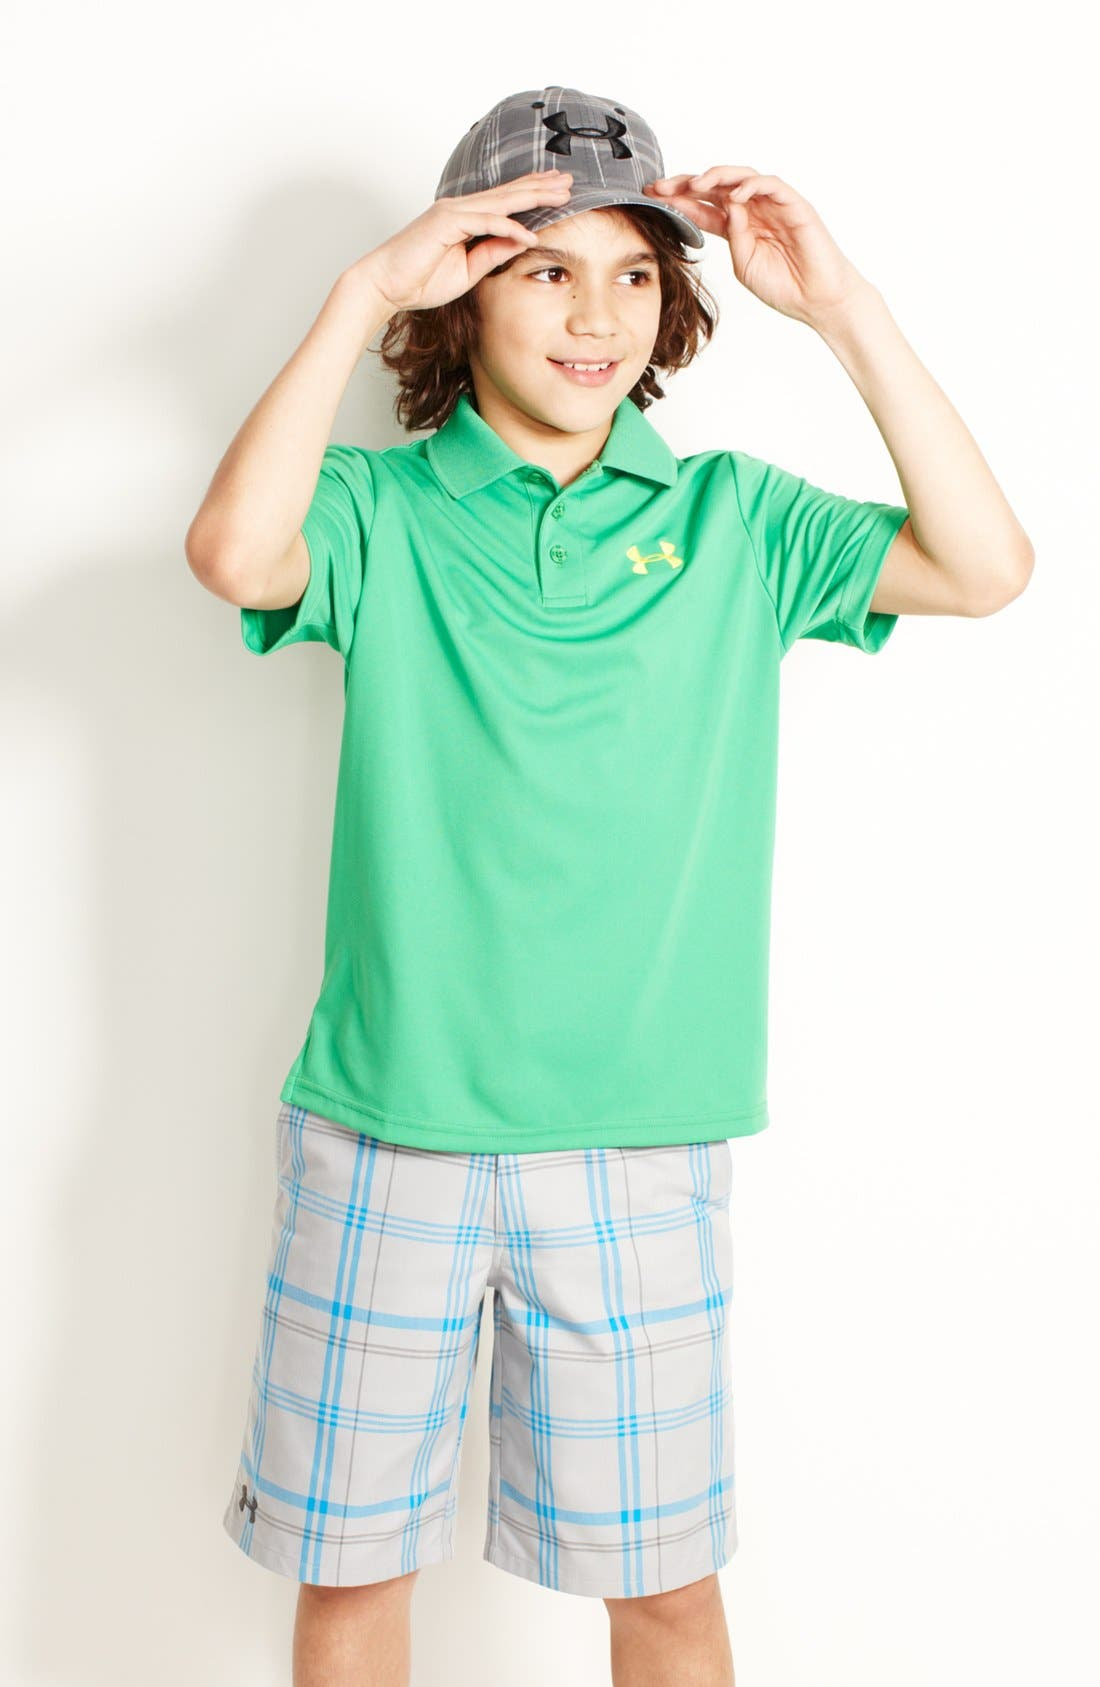 Alternate Image 1 Selected - Under Armour Polo & Shorts